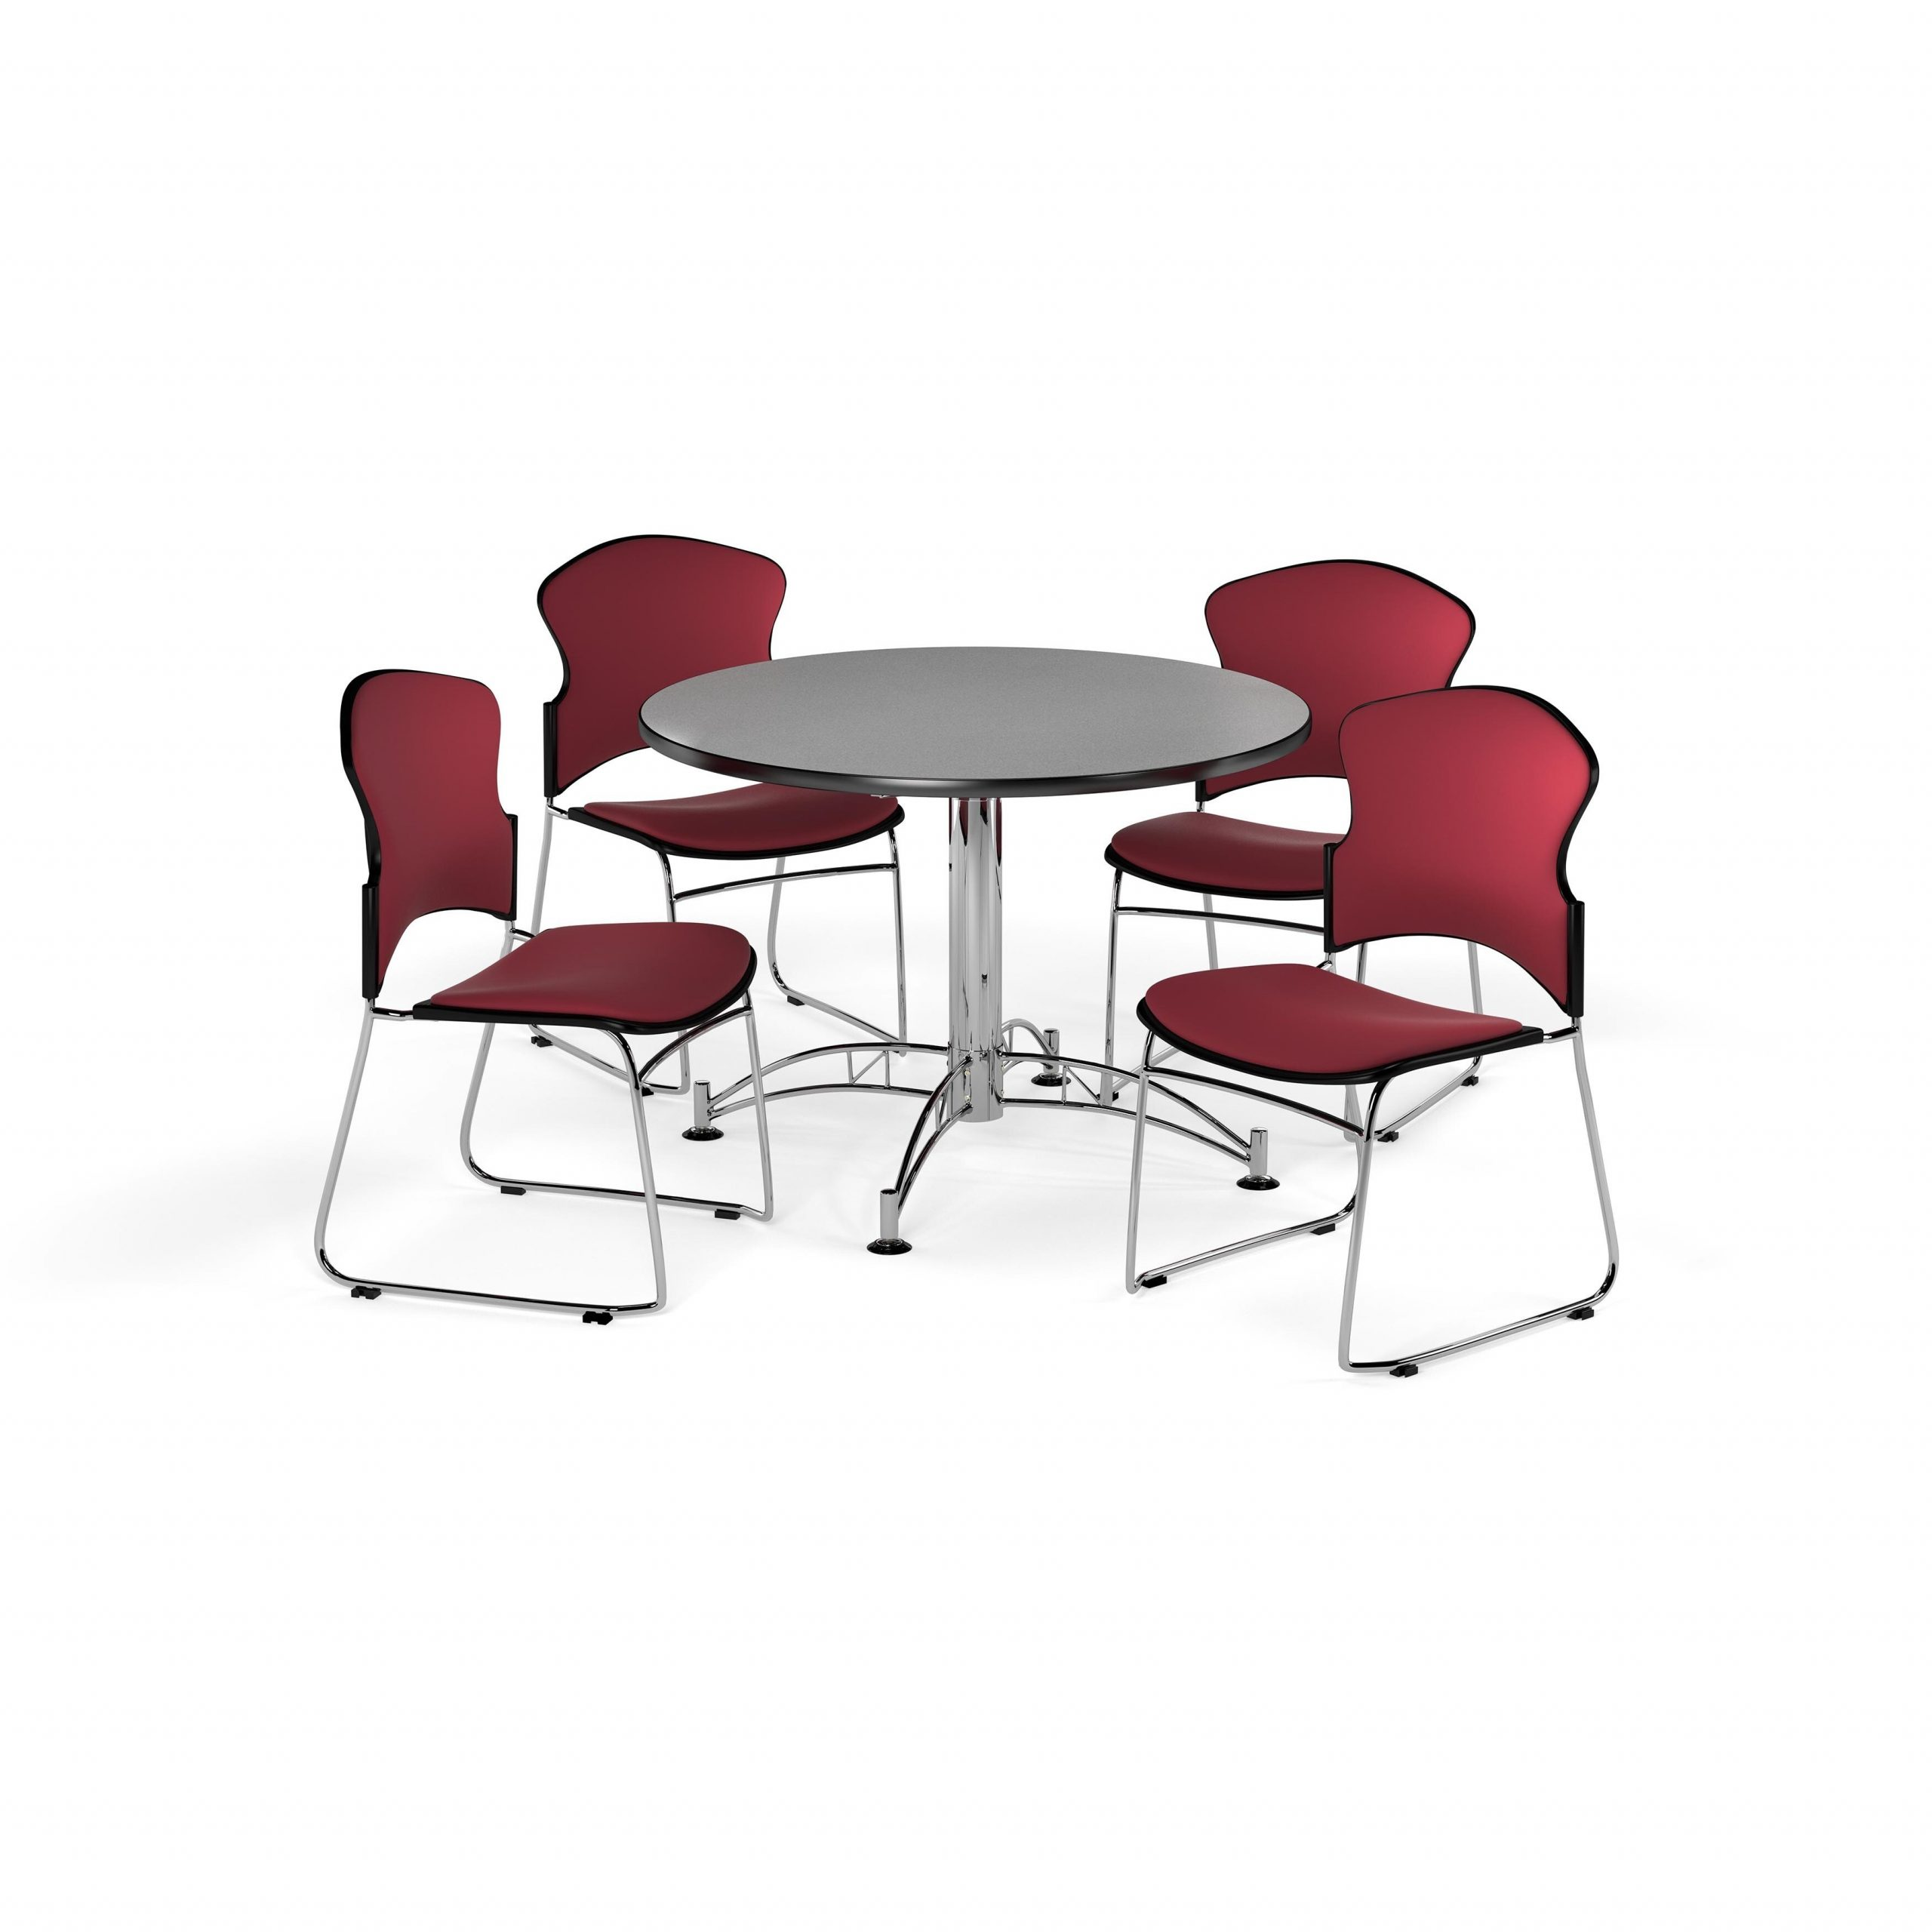 Ofm Gray 42 Inch Round Break Room Multi Purpose Table With For Most Up To Date Mode Round Breakroom Tables (View 7 of 15)